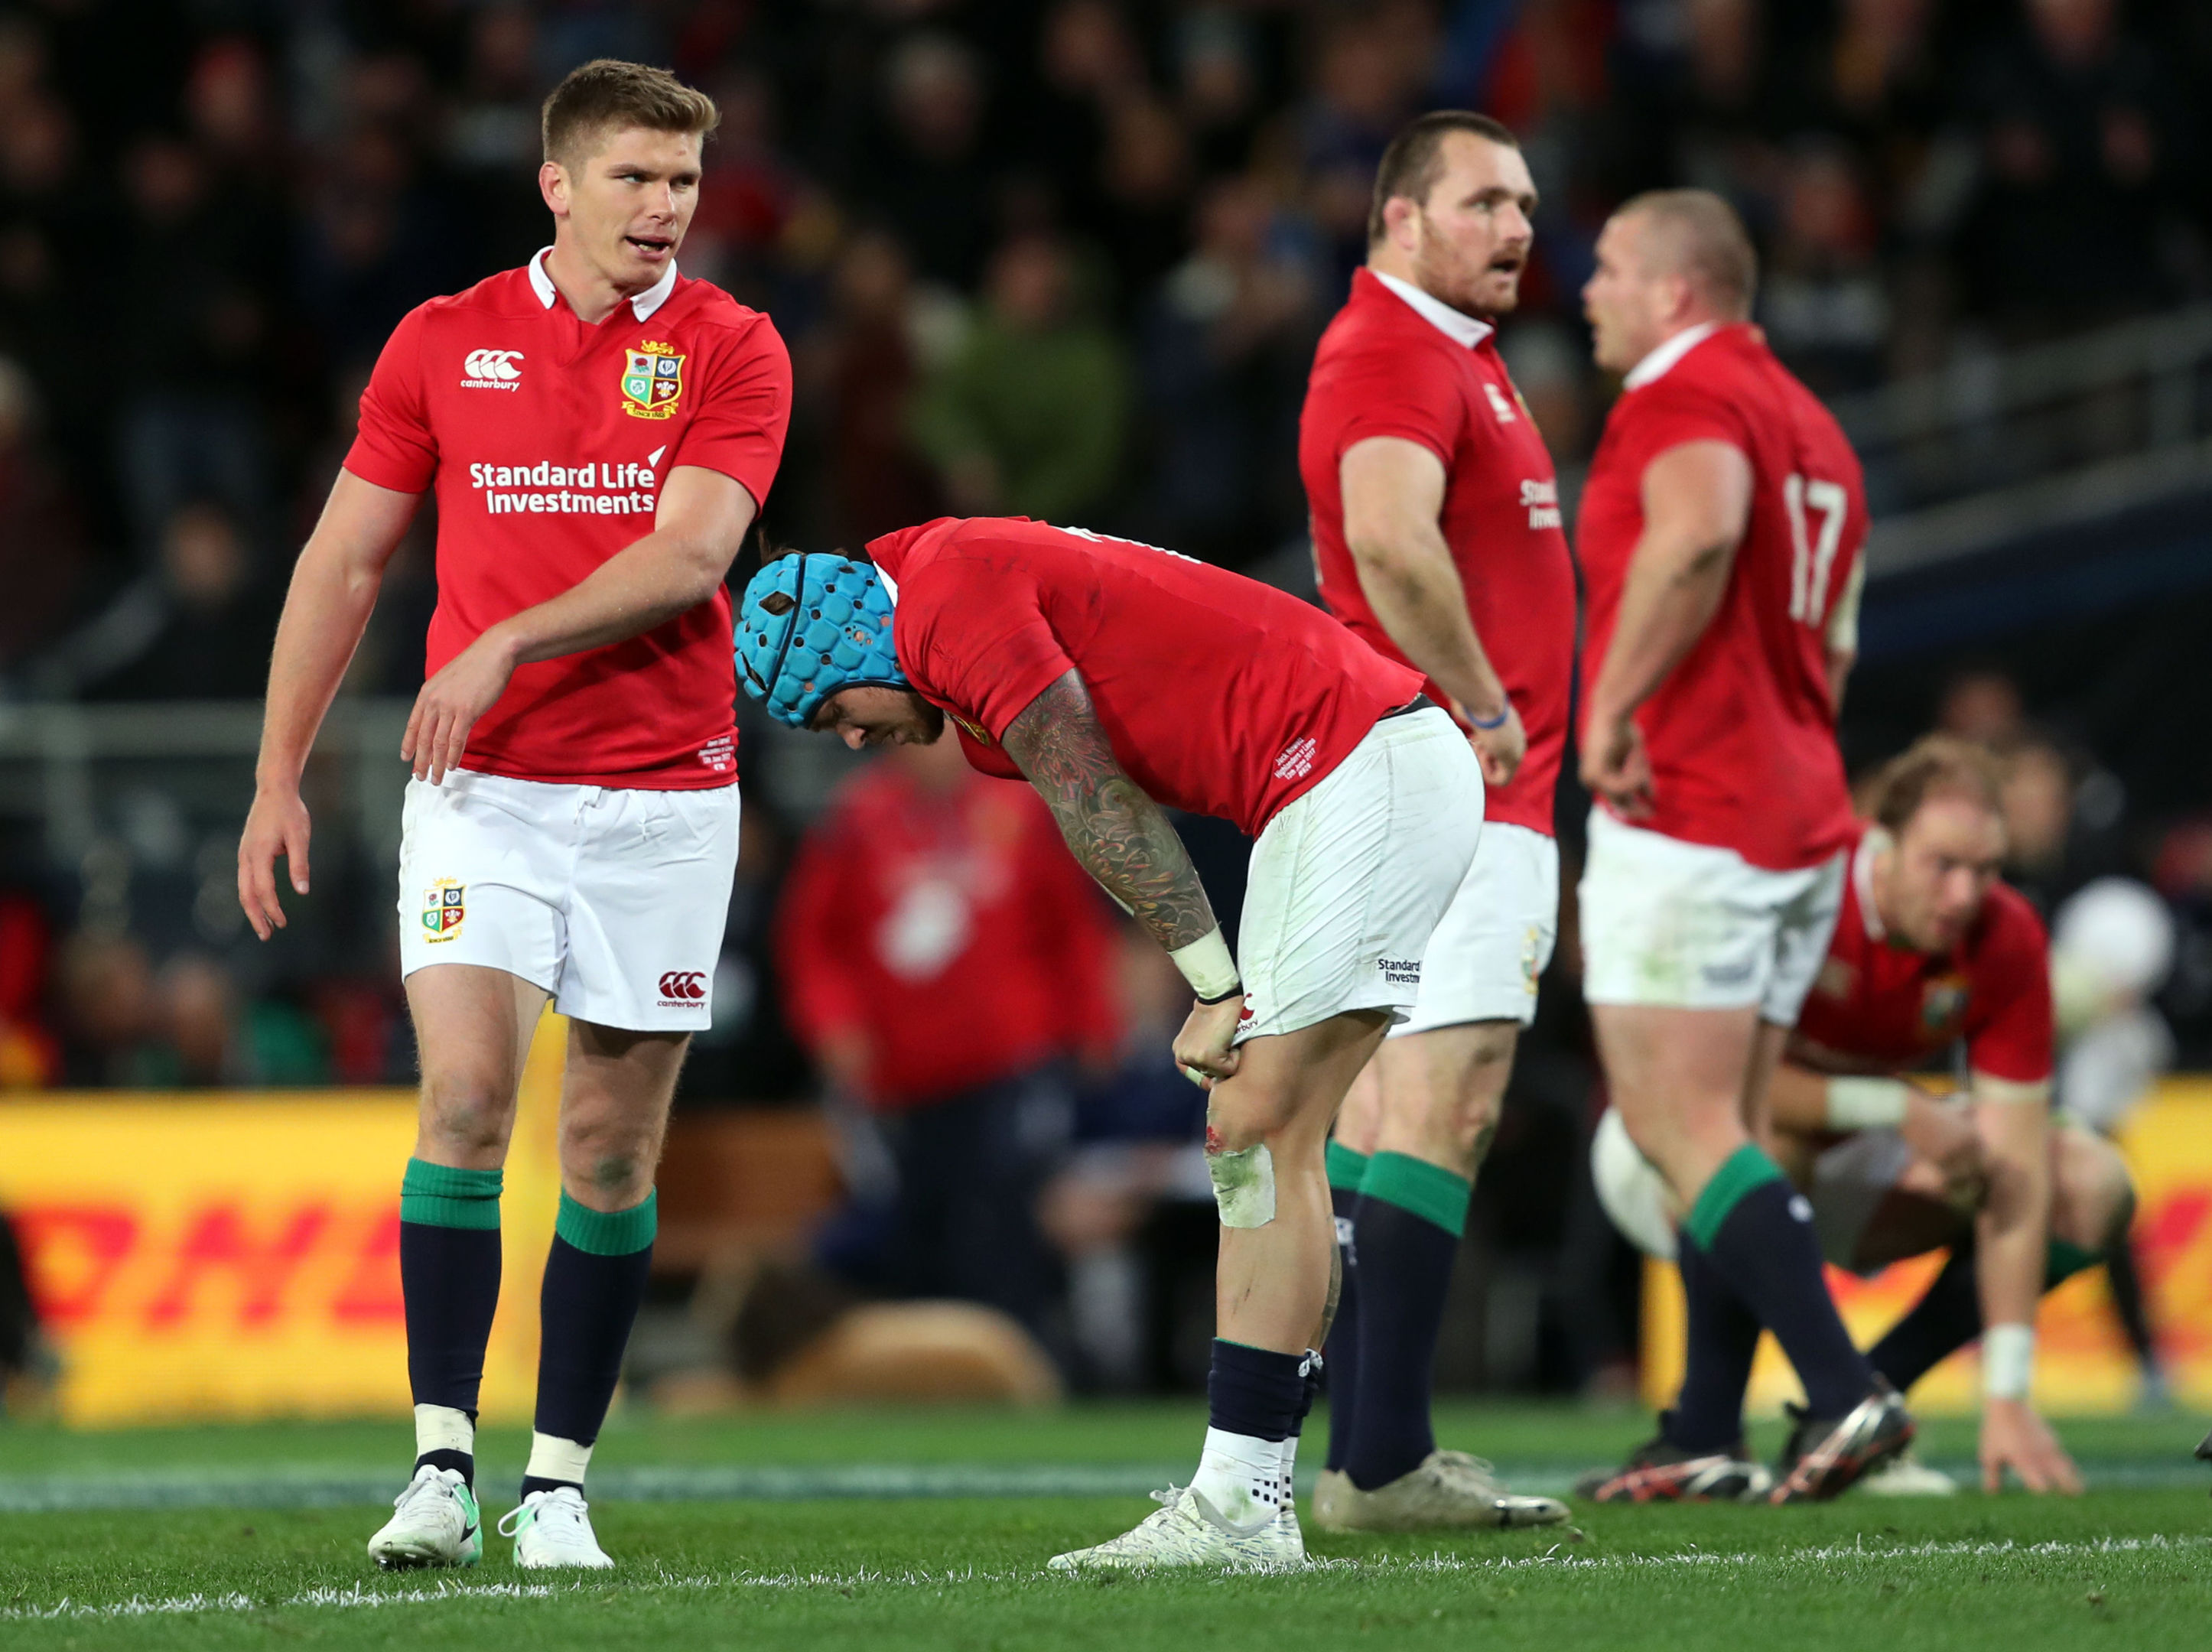 Owen Farrell and Jack Nowell are dejected after the loss to the Highlanders in Dunedin.